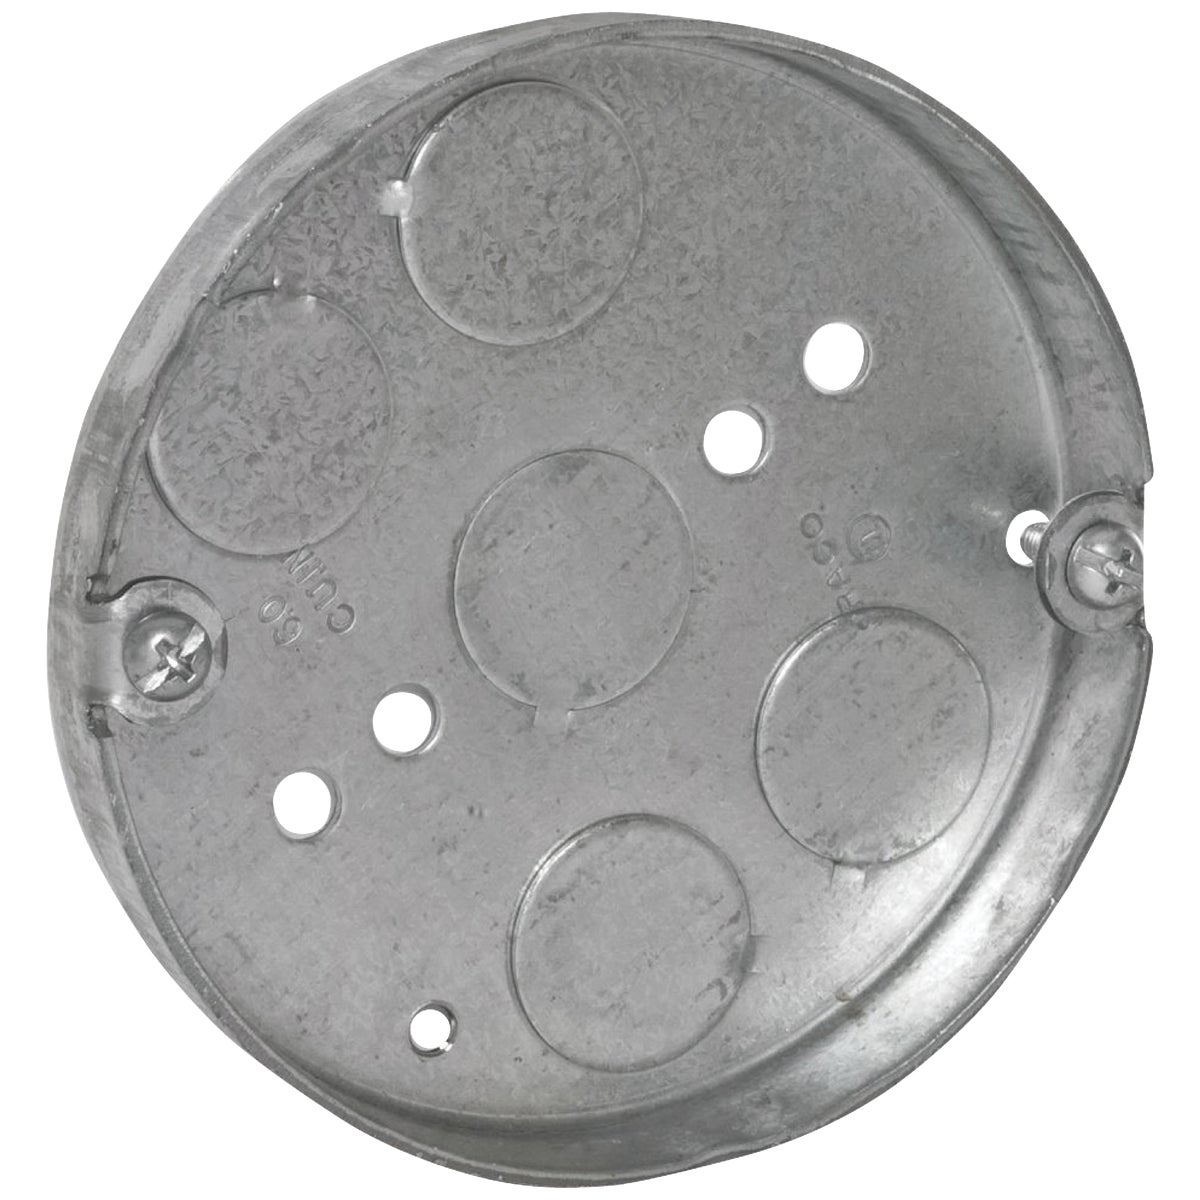 "4"" RND CEILING PAN - 56111 by Thomas & Betts"